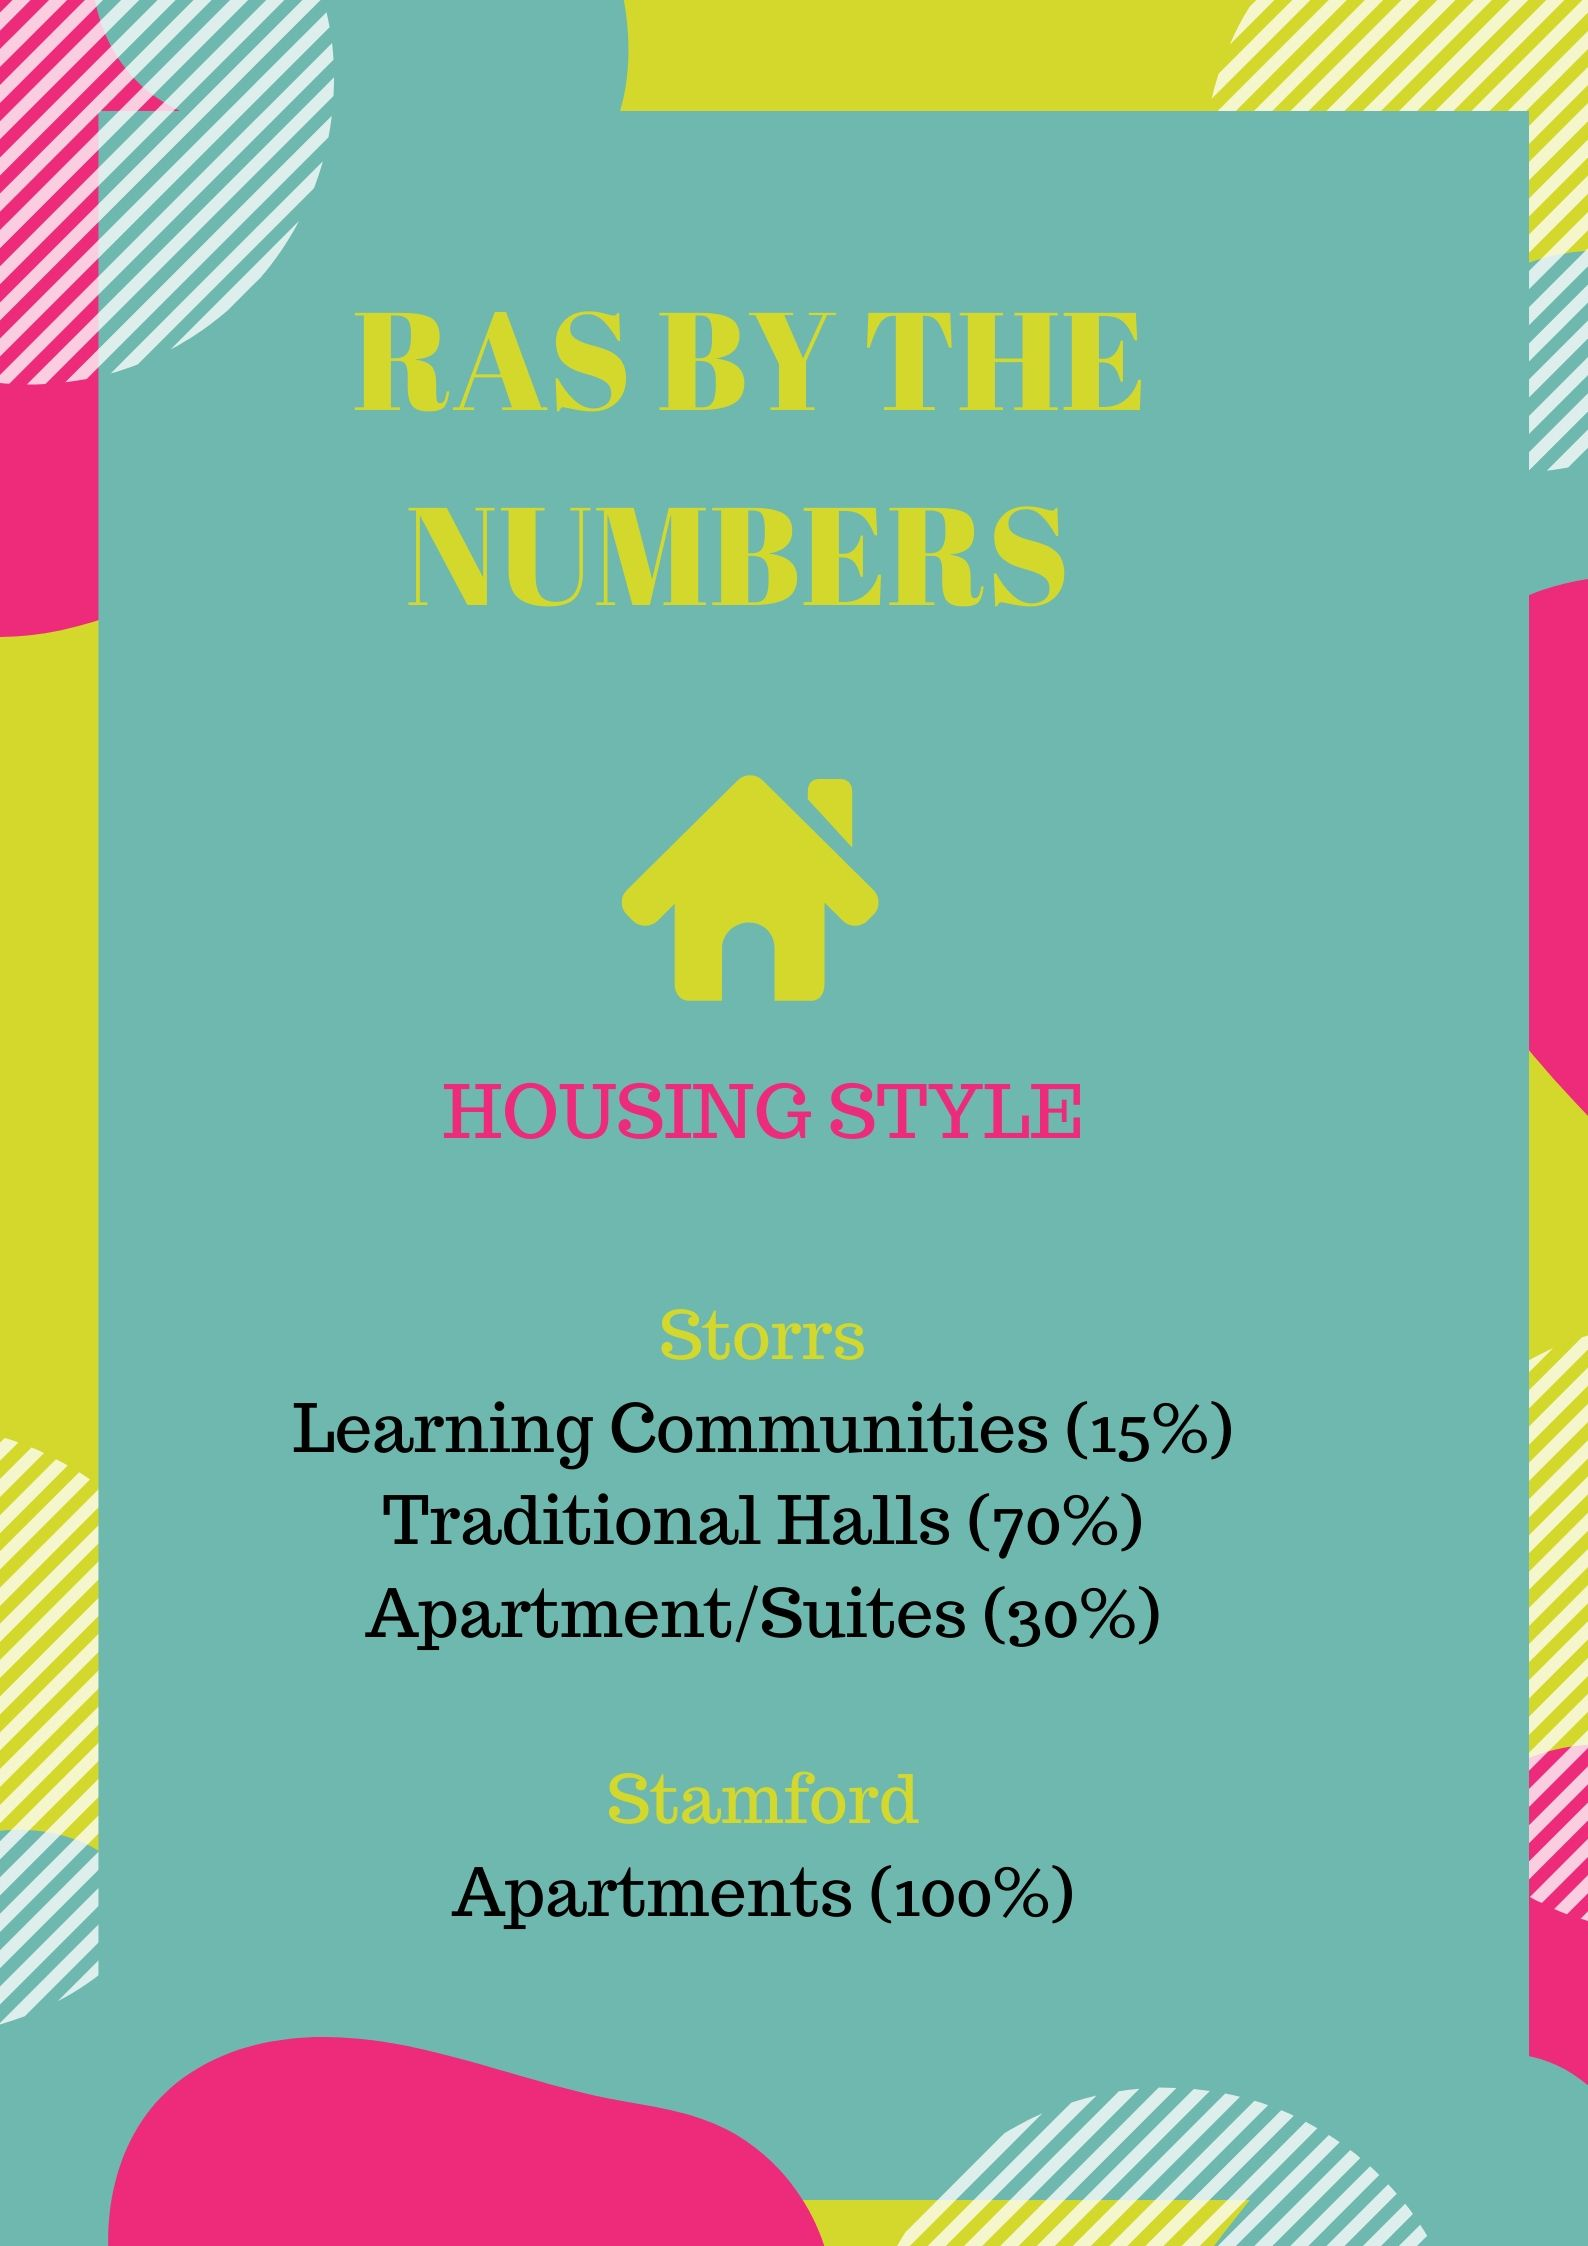 RAs by the numbers: Housing Style. At Storrs, the housing styles are 15% Learning Communities, 70% Traditional Halls, and 30% Apartment/Suites. In Stamford, they are 100% apartments.